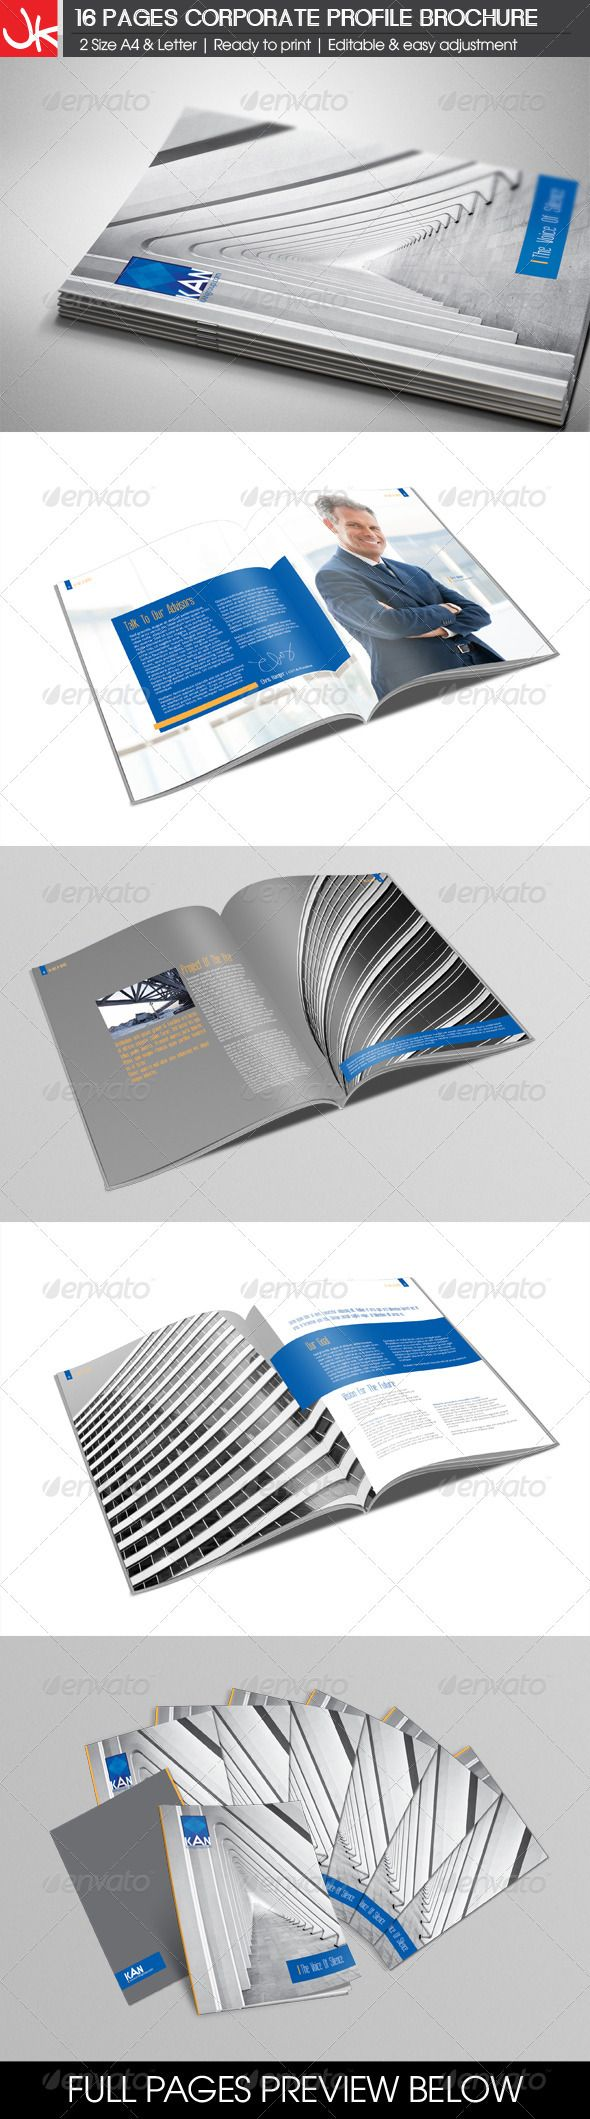 16 Pages Corporate Profile Brochure – Corporate Profile Template